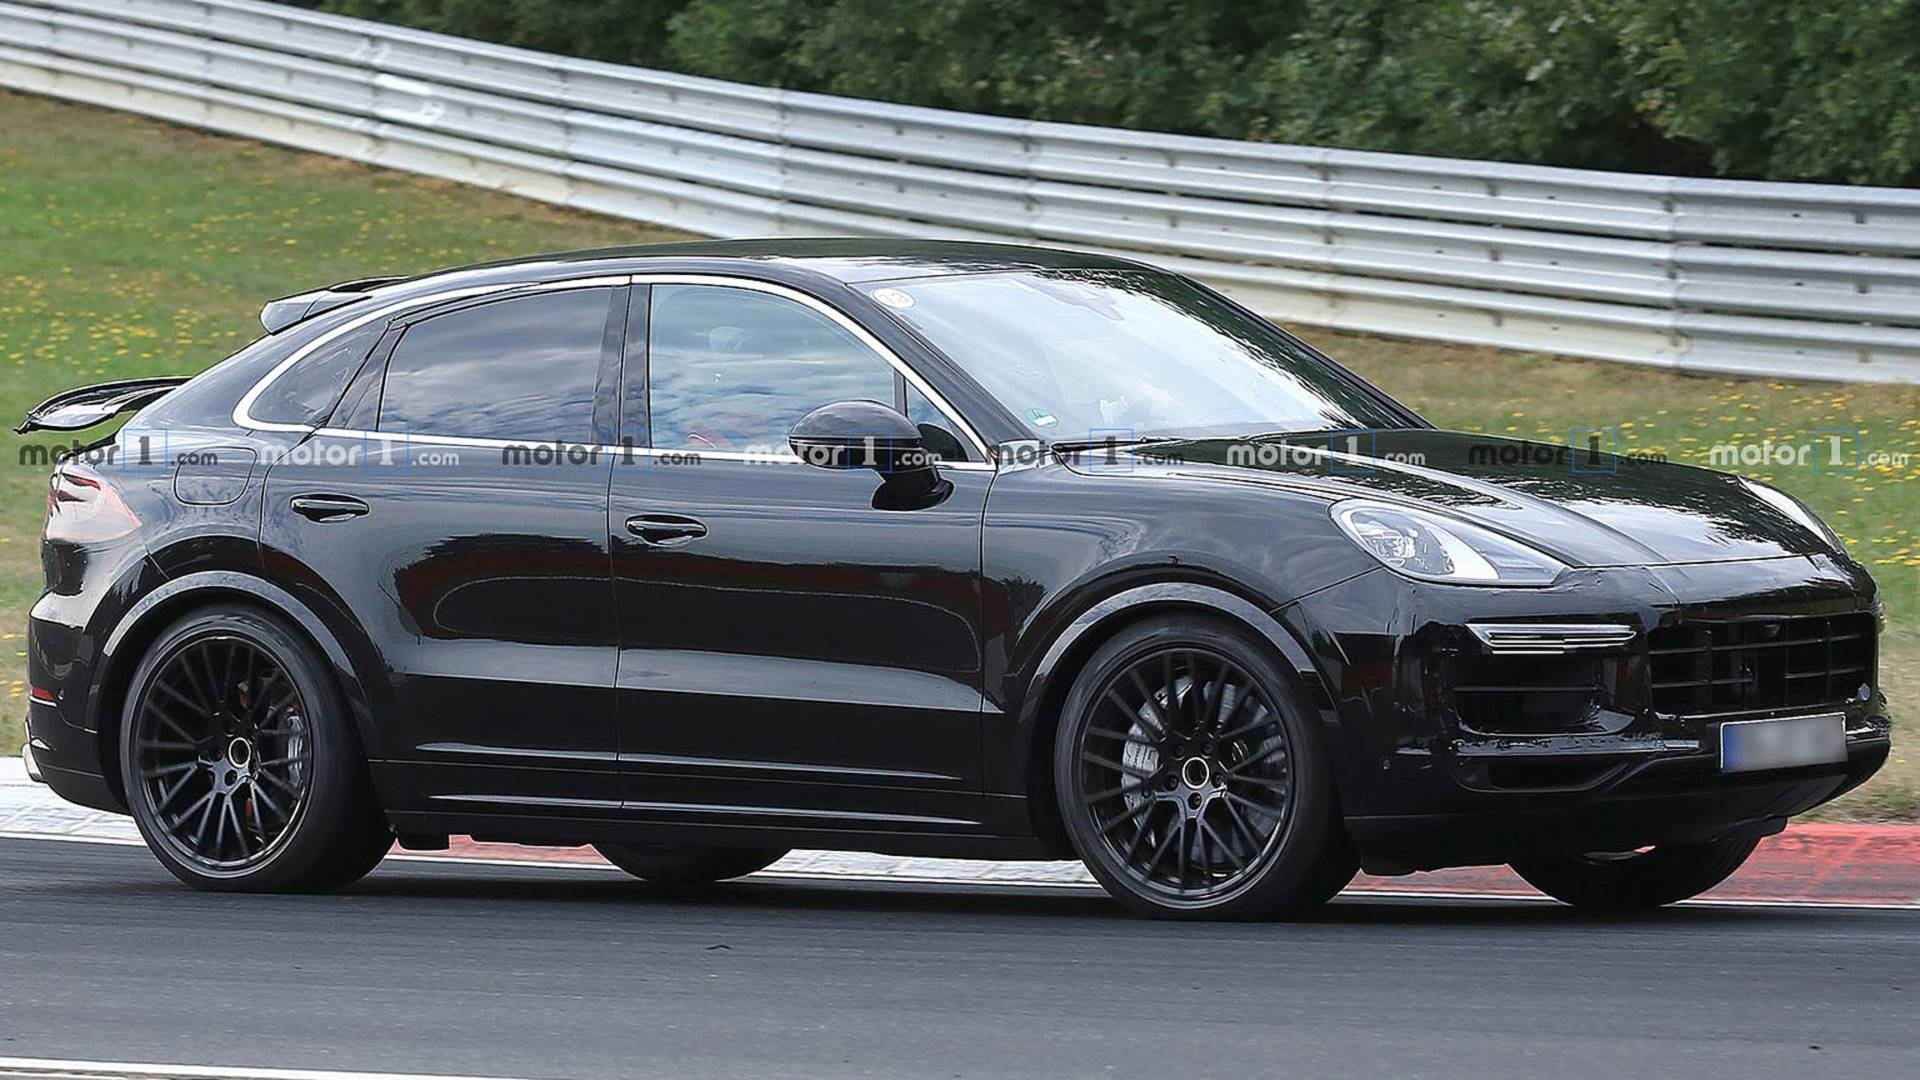 Porsche Cayenne Coupe Spied Showing Off Its Weird Rear Wing 1920x1080